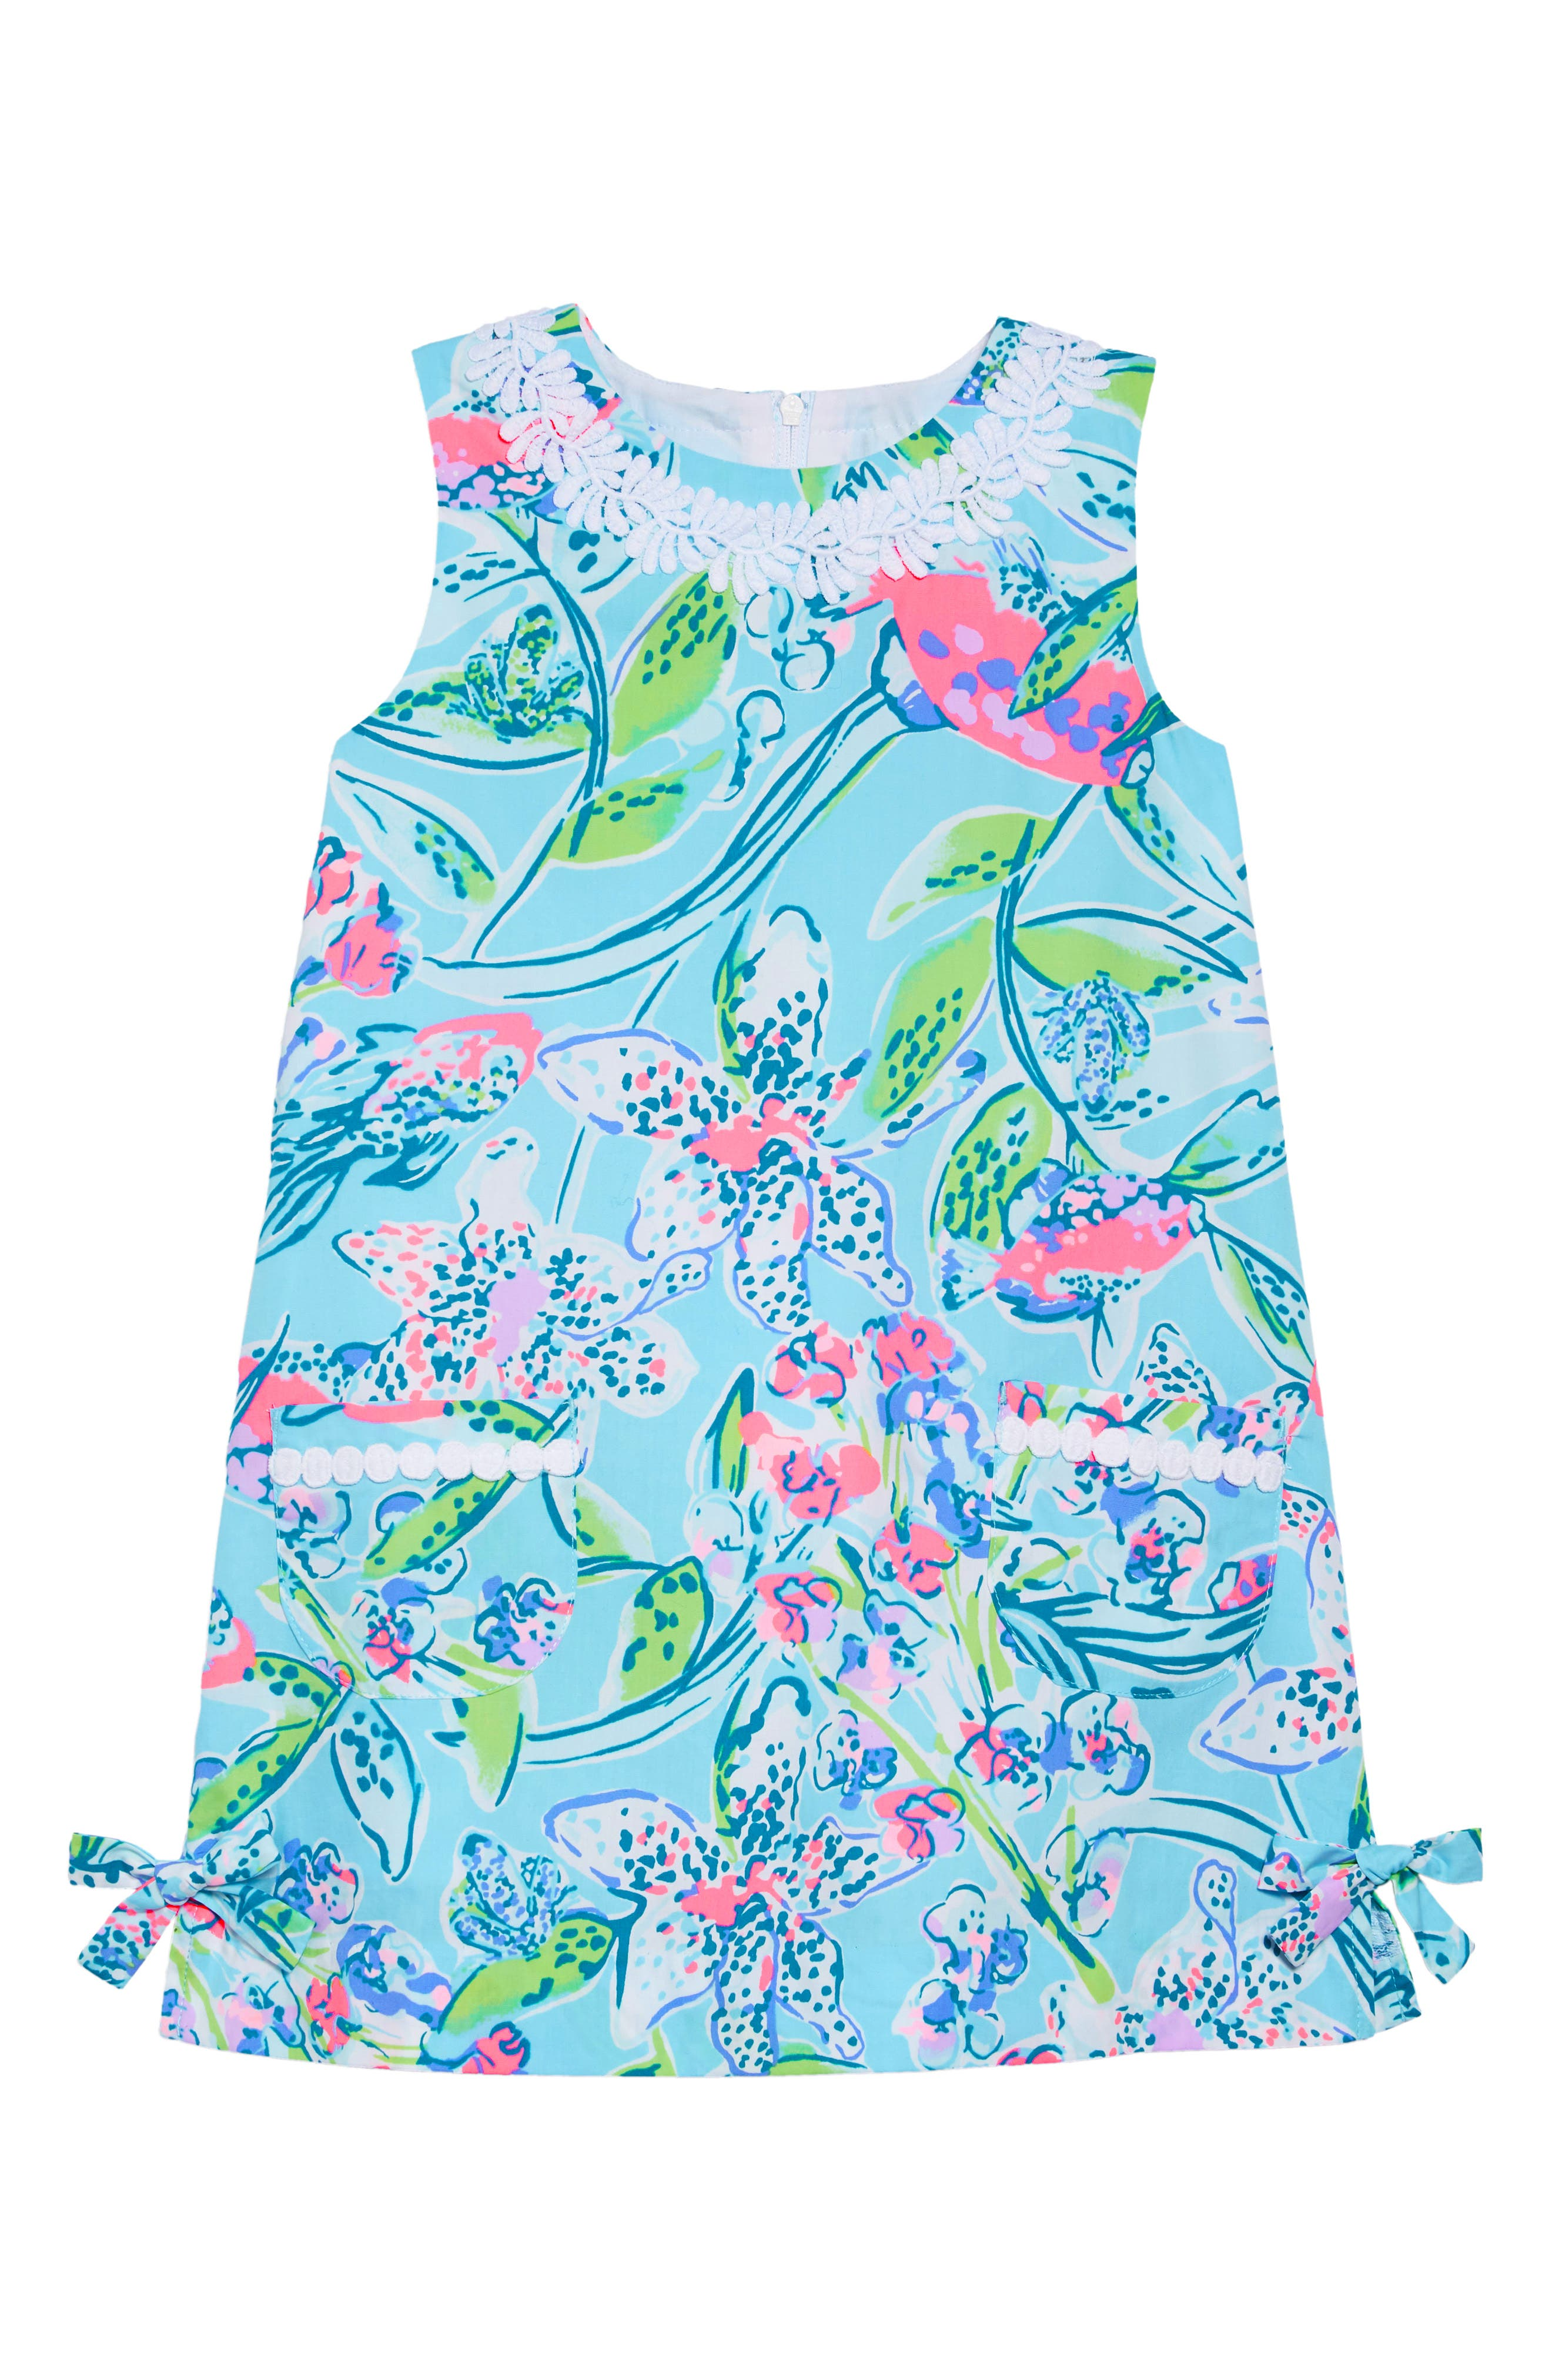 LILLY PULITZER<SUP>®</SUP> Little Lilly Classic Shift Dress, Main, color, BALI BLUE SWAY THIS WAY